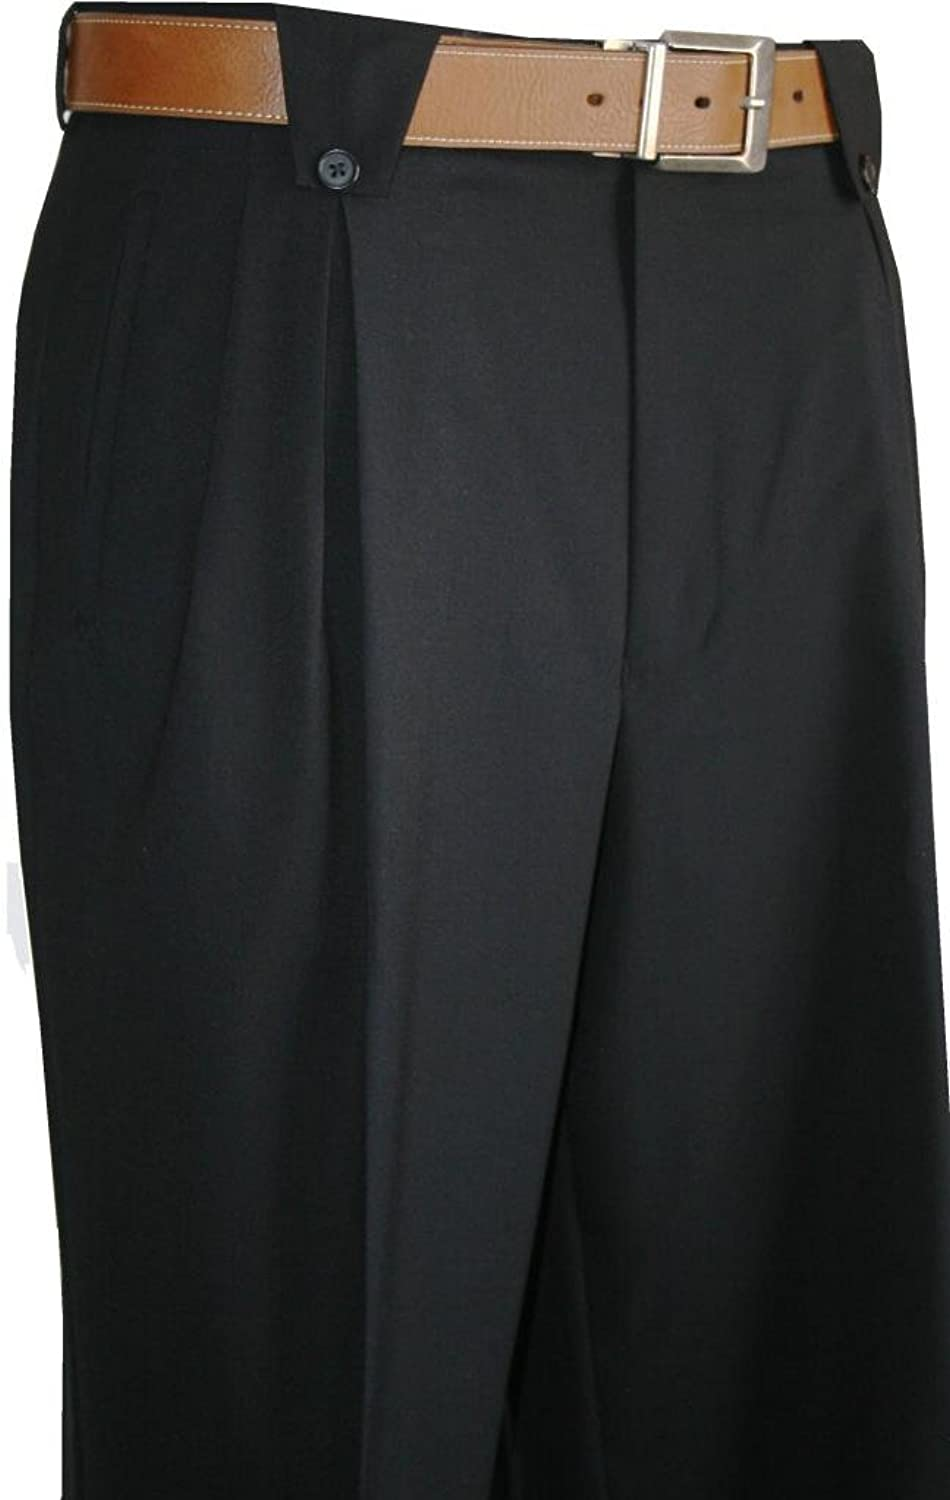 DressinGreatGatsbyClothesforMen Wide Leg Mens Pants Black $99.00 AT vintagedancer.com